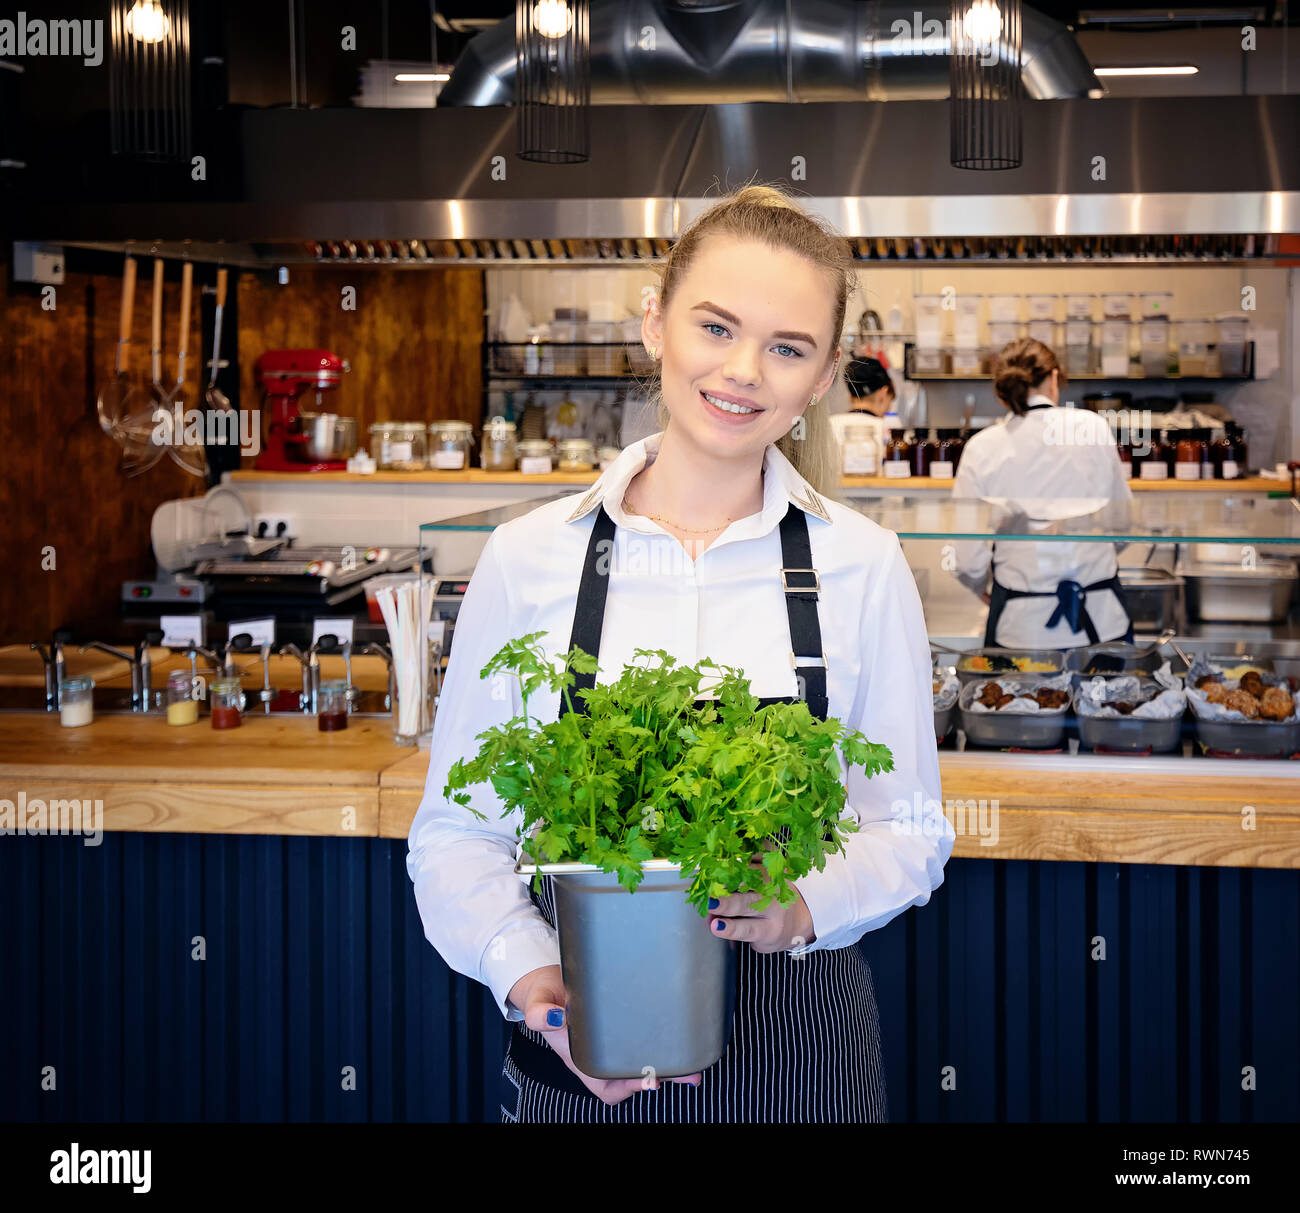 Smiling Young Woman holding fresh parsley. Employee standing in front of the Restaurant counter and employees working in background - Stock Image